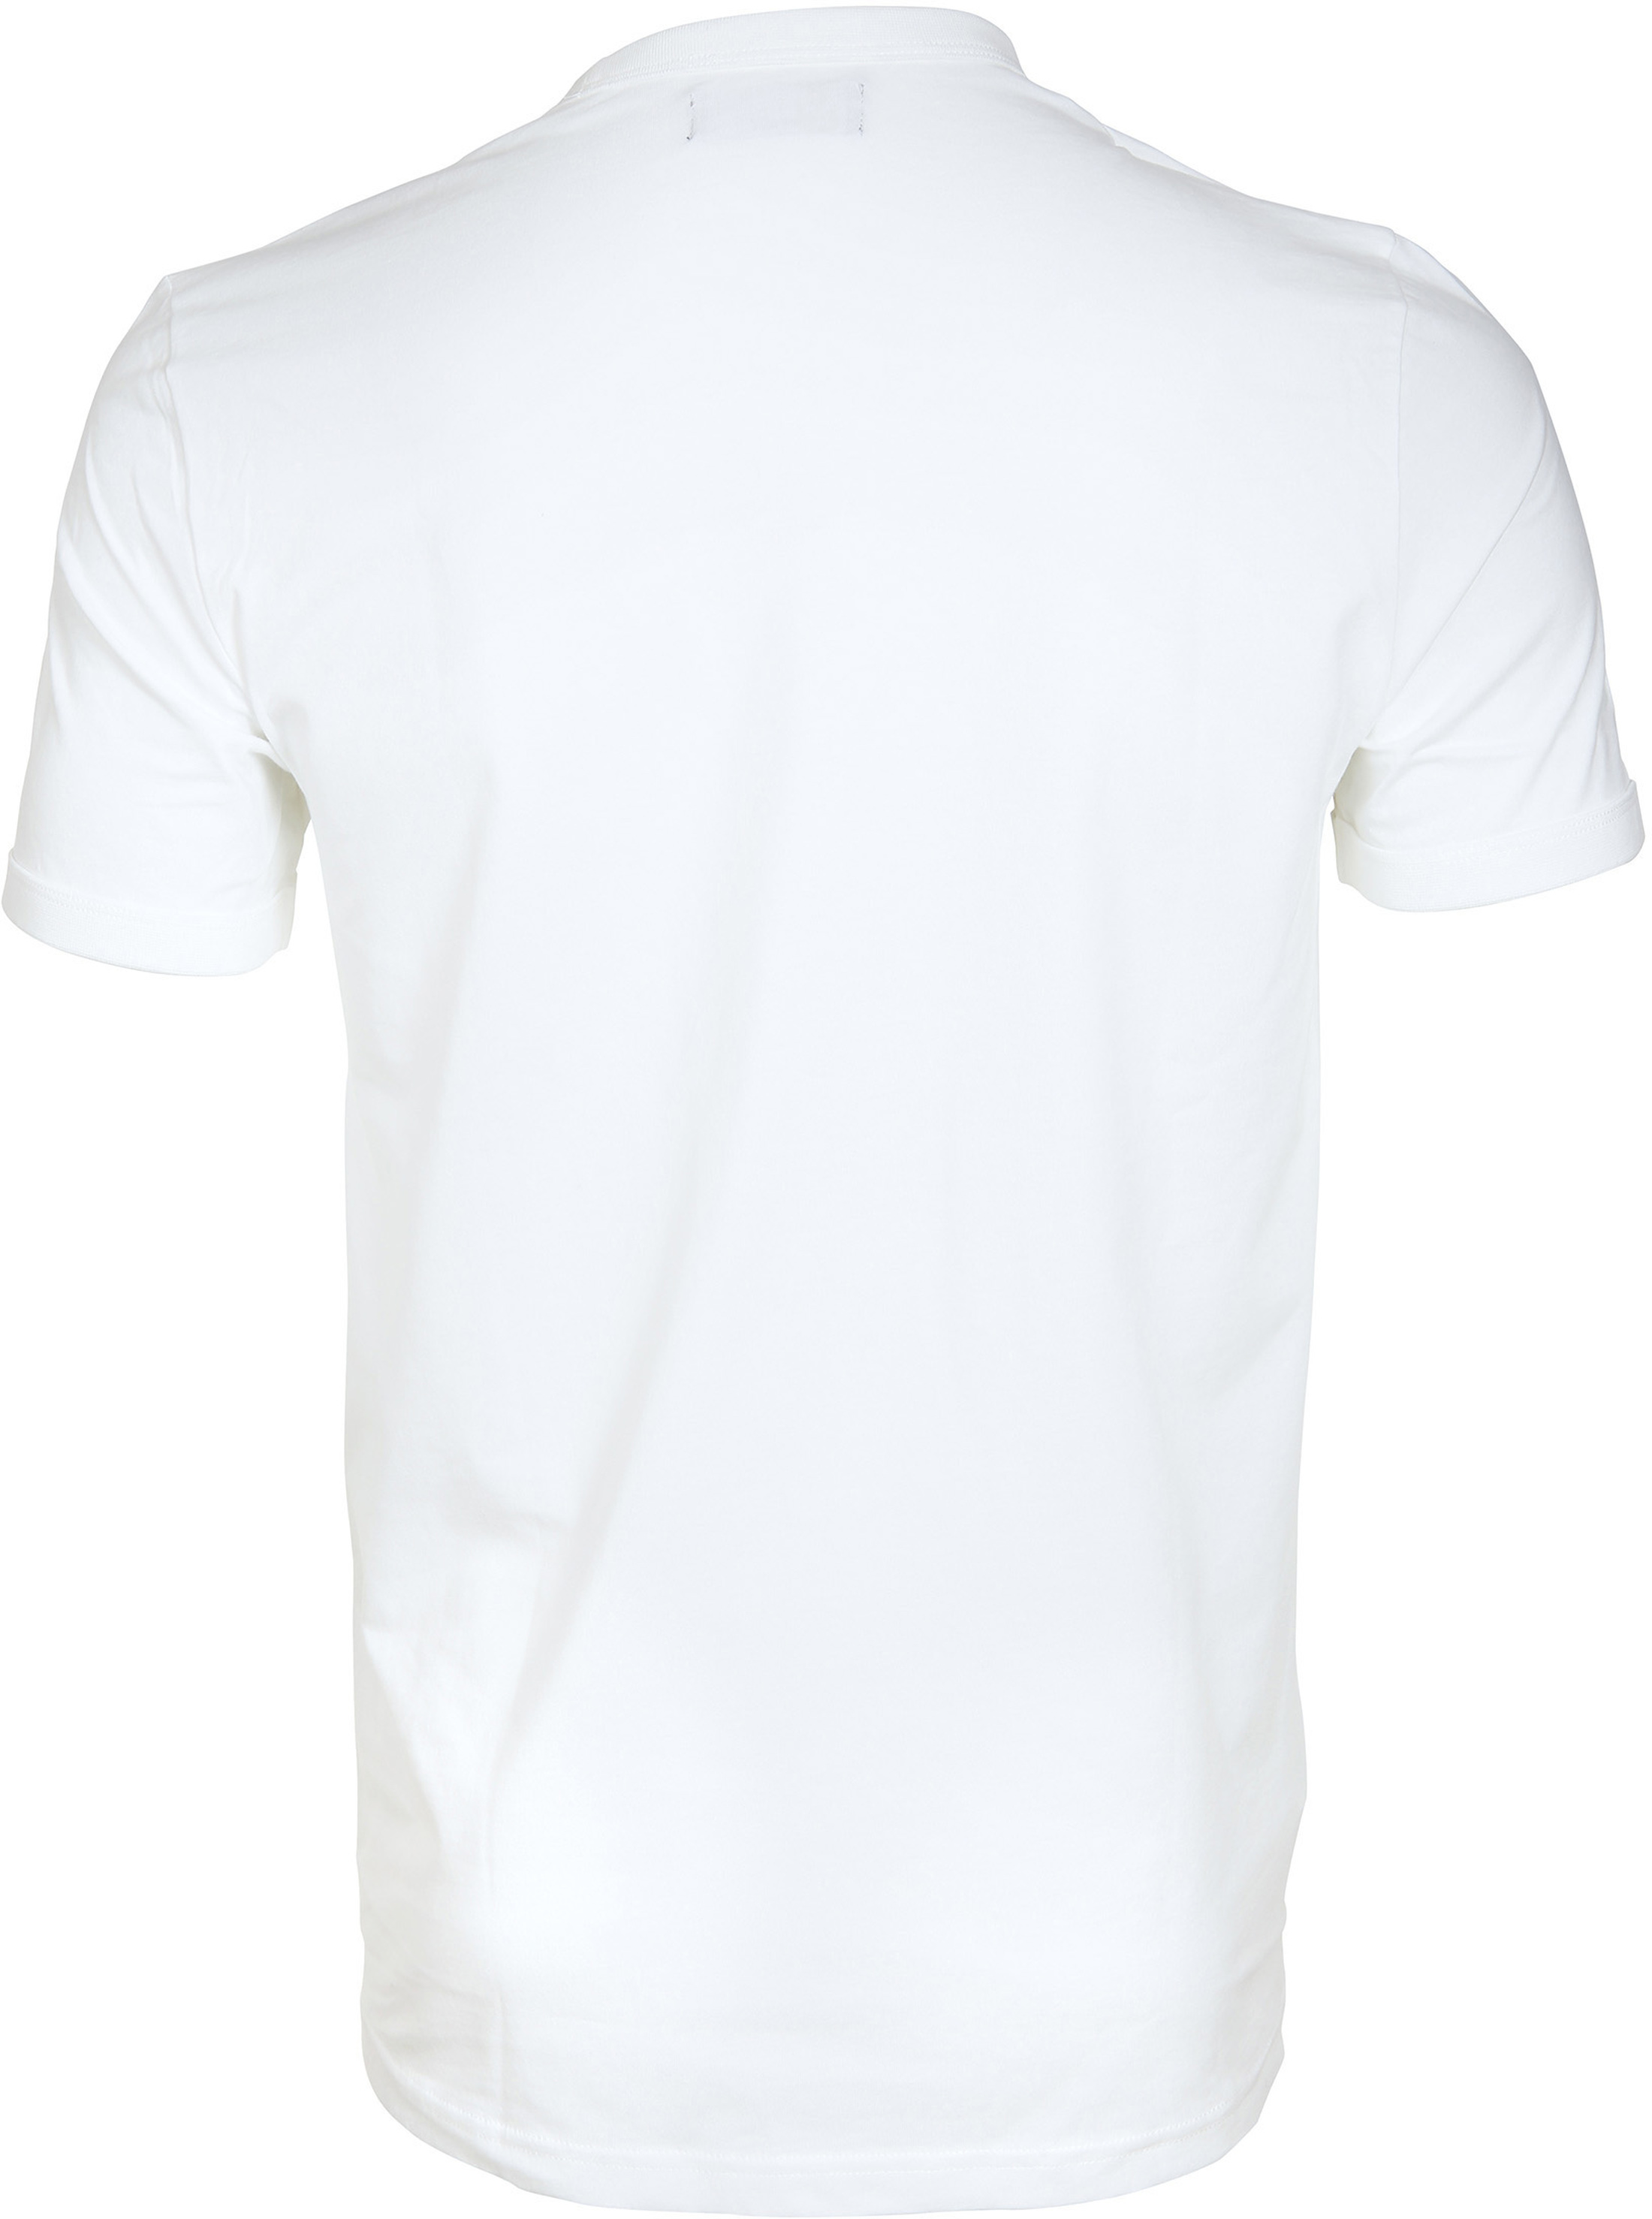 Fred Perry Ringer Shirt White foto 2